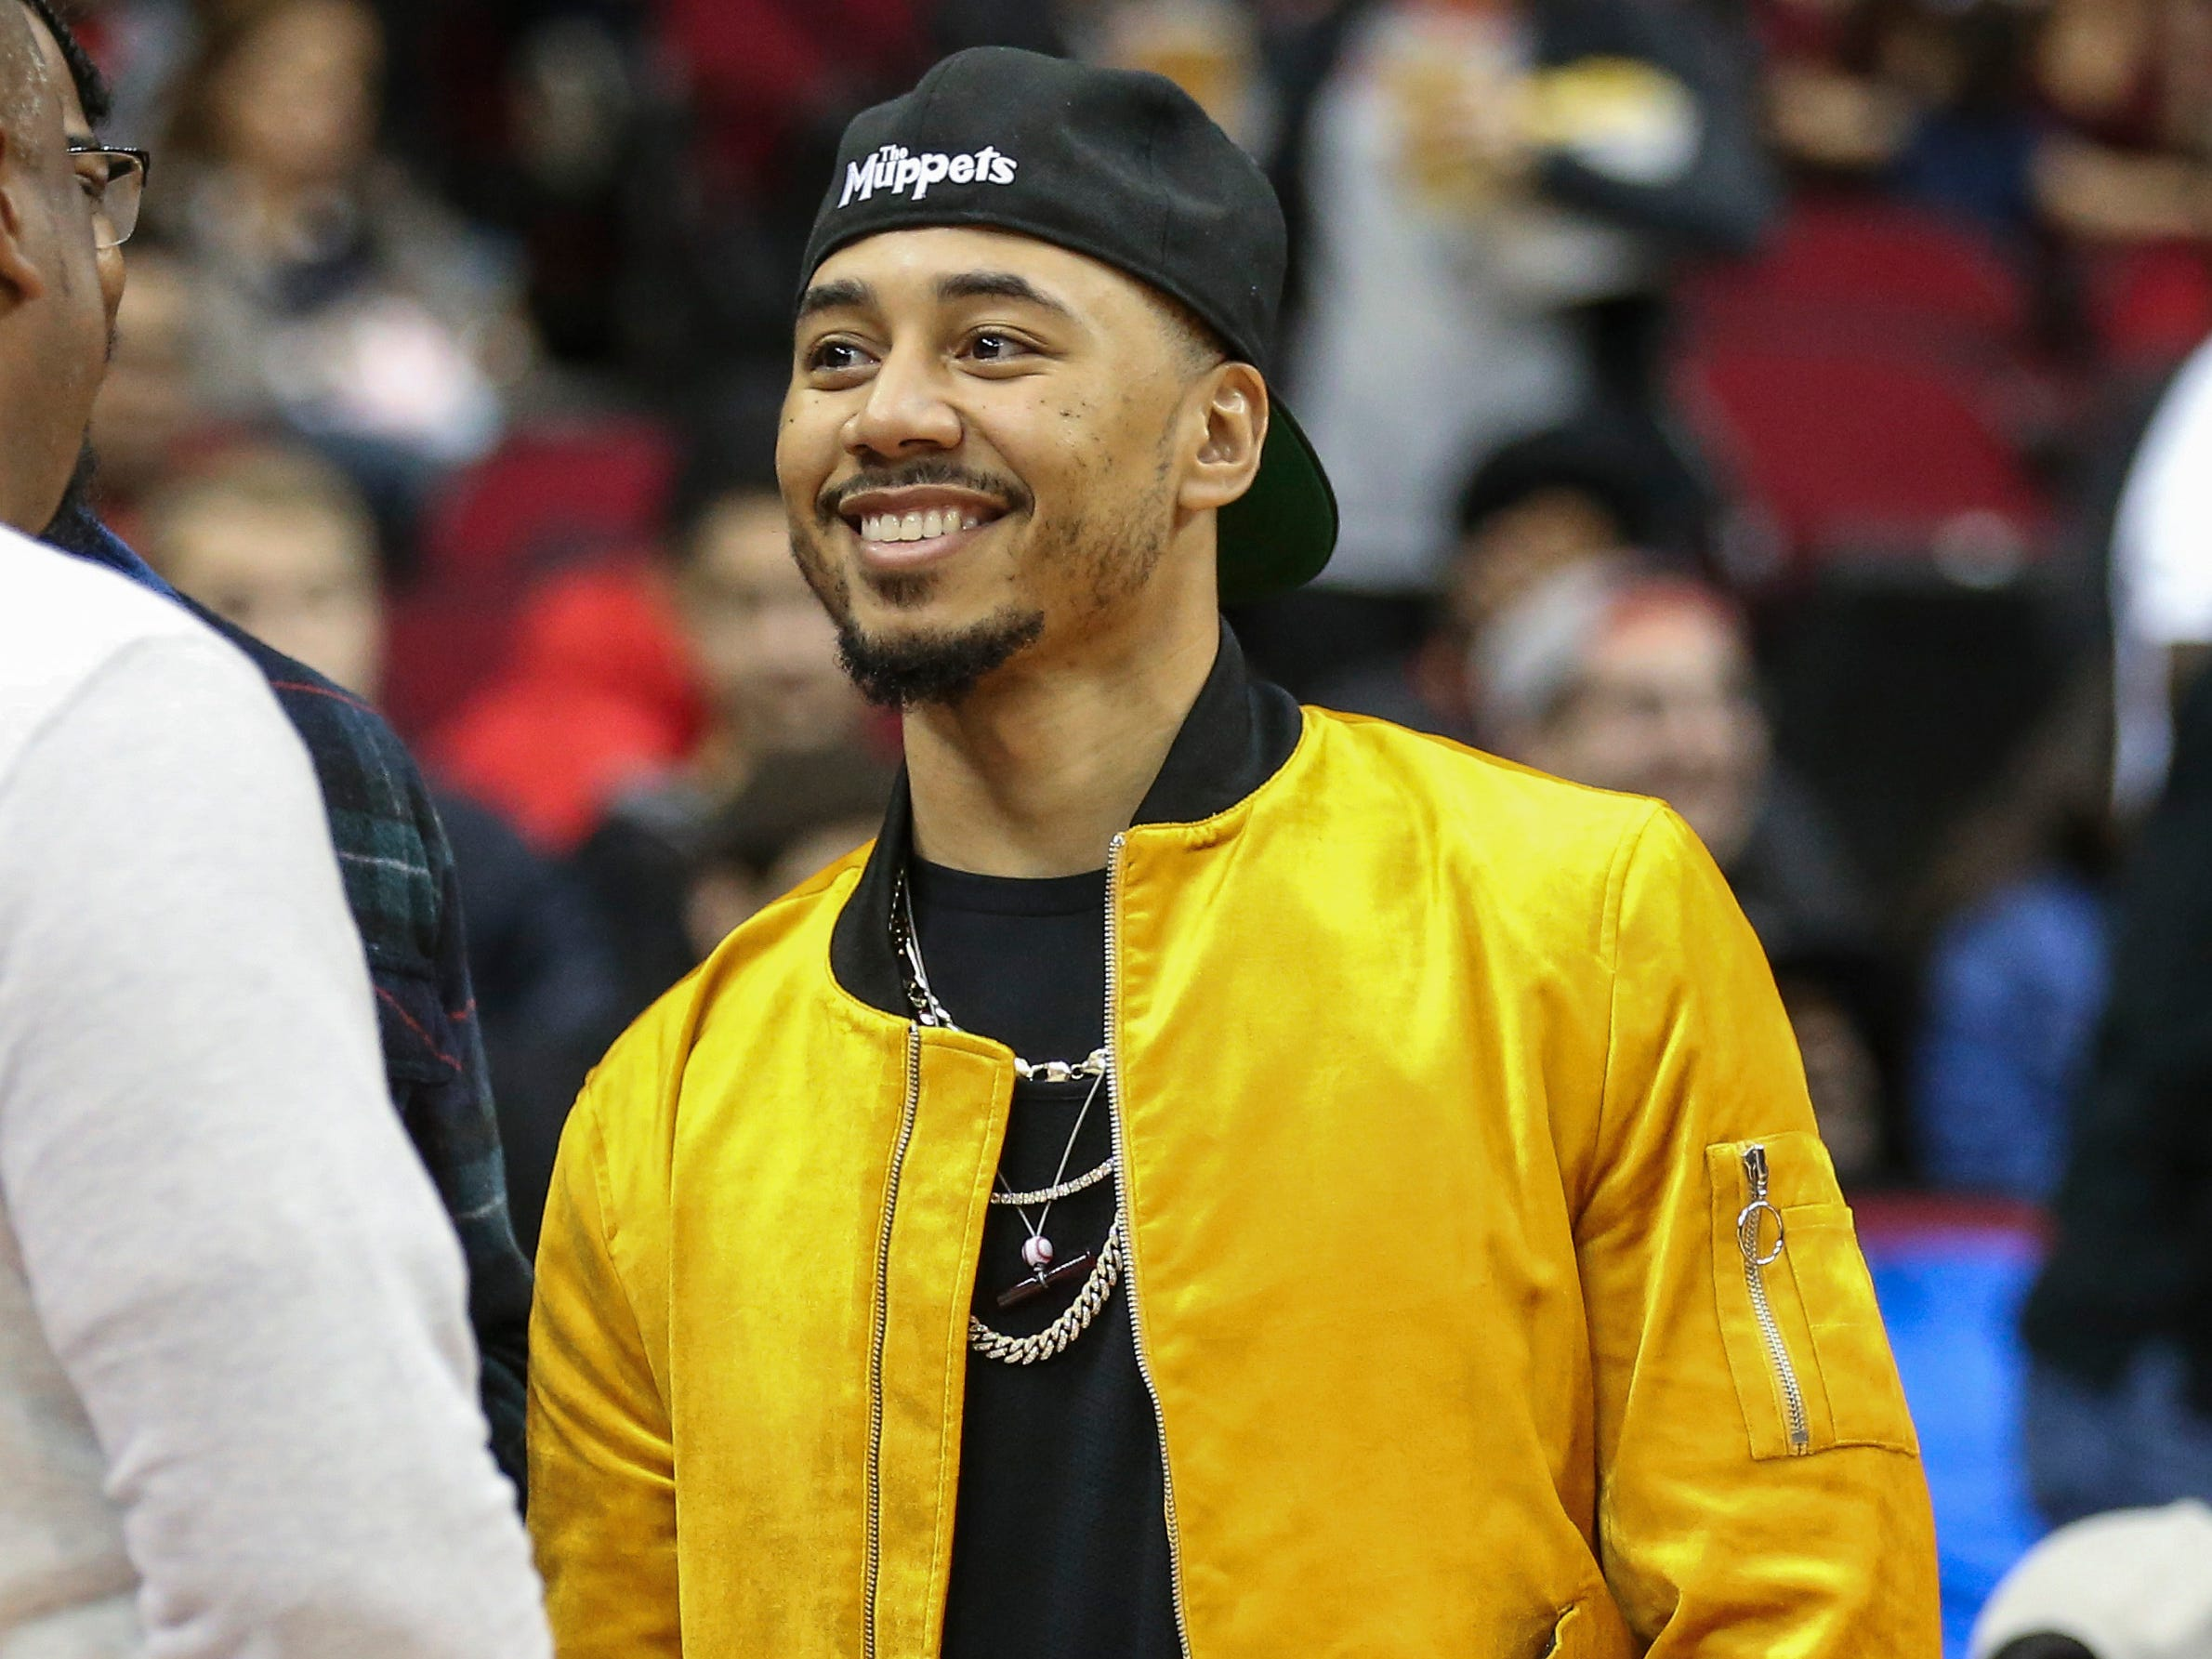 Dec. 31: Boston Red Sox right fielder Mookie Betts smiles while attending a game between the Houston Rockets and the Memphis Grizzlies at Toyota Center.